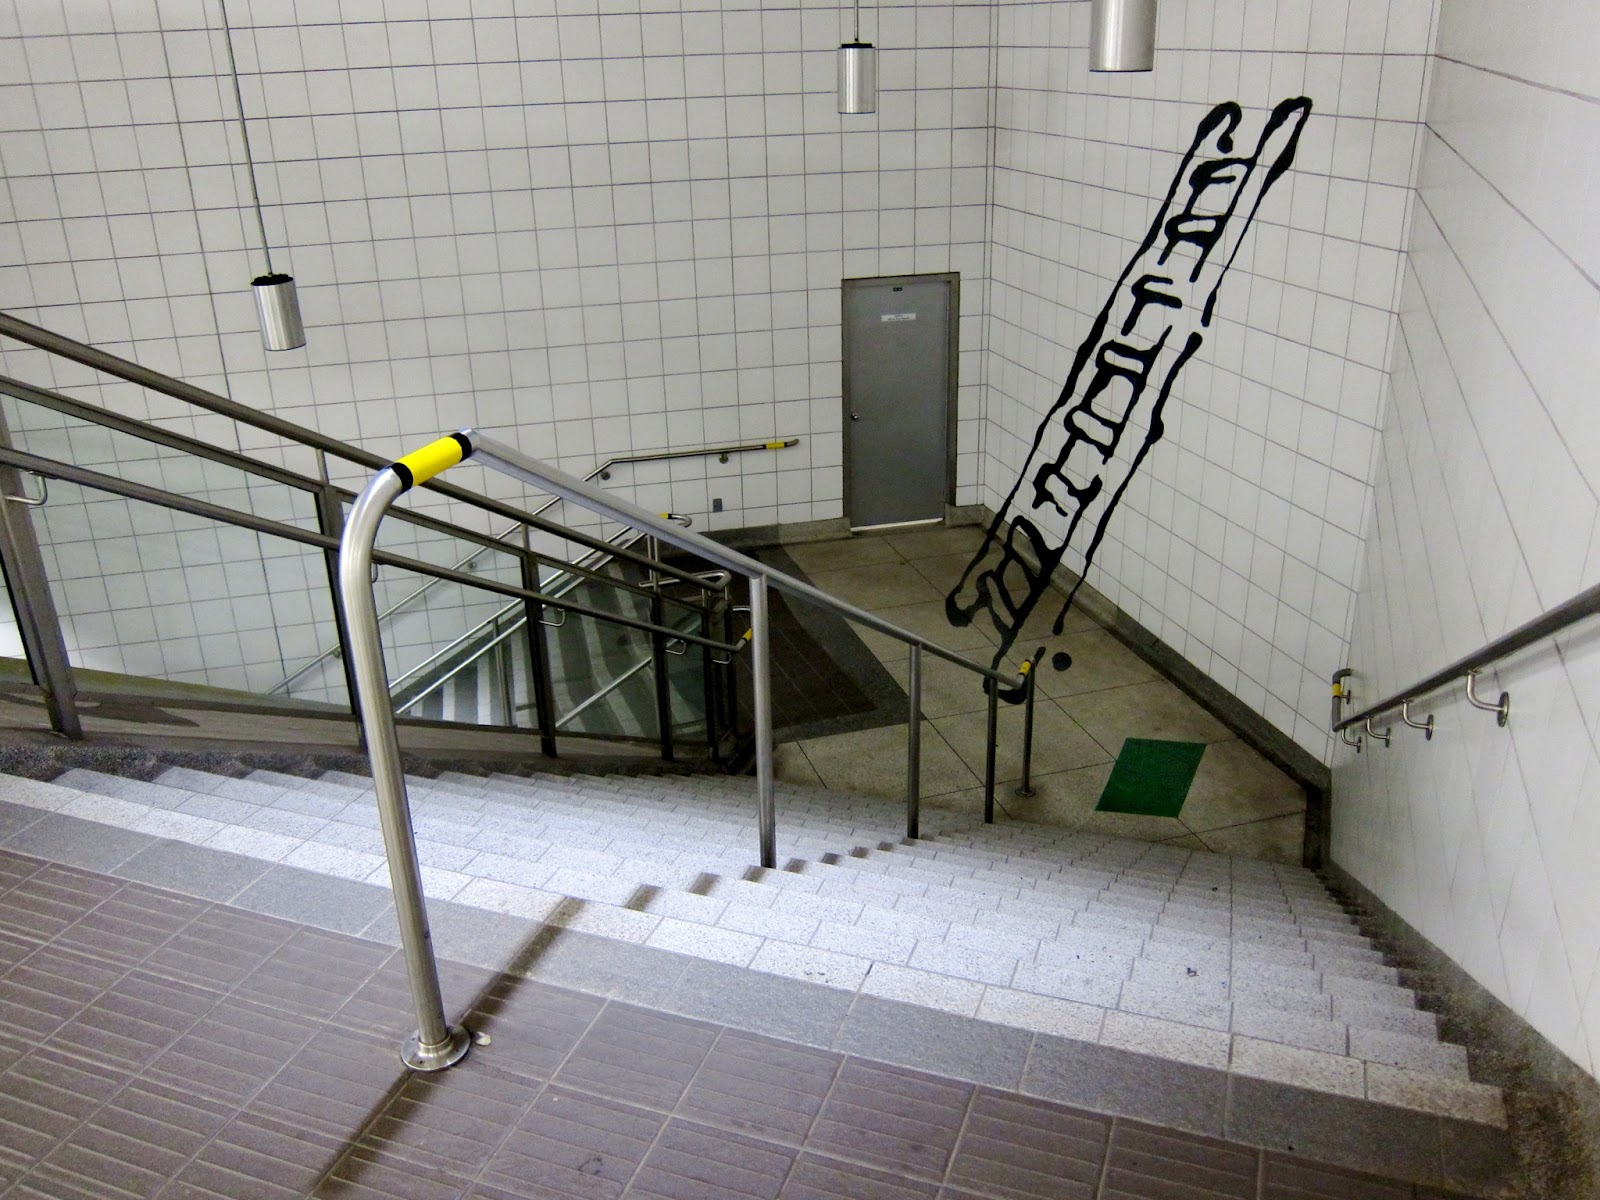 Photo: anamorphic ladder from Panya Clark Espinal's installation at Bayview station